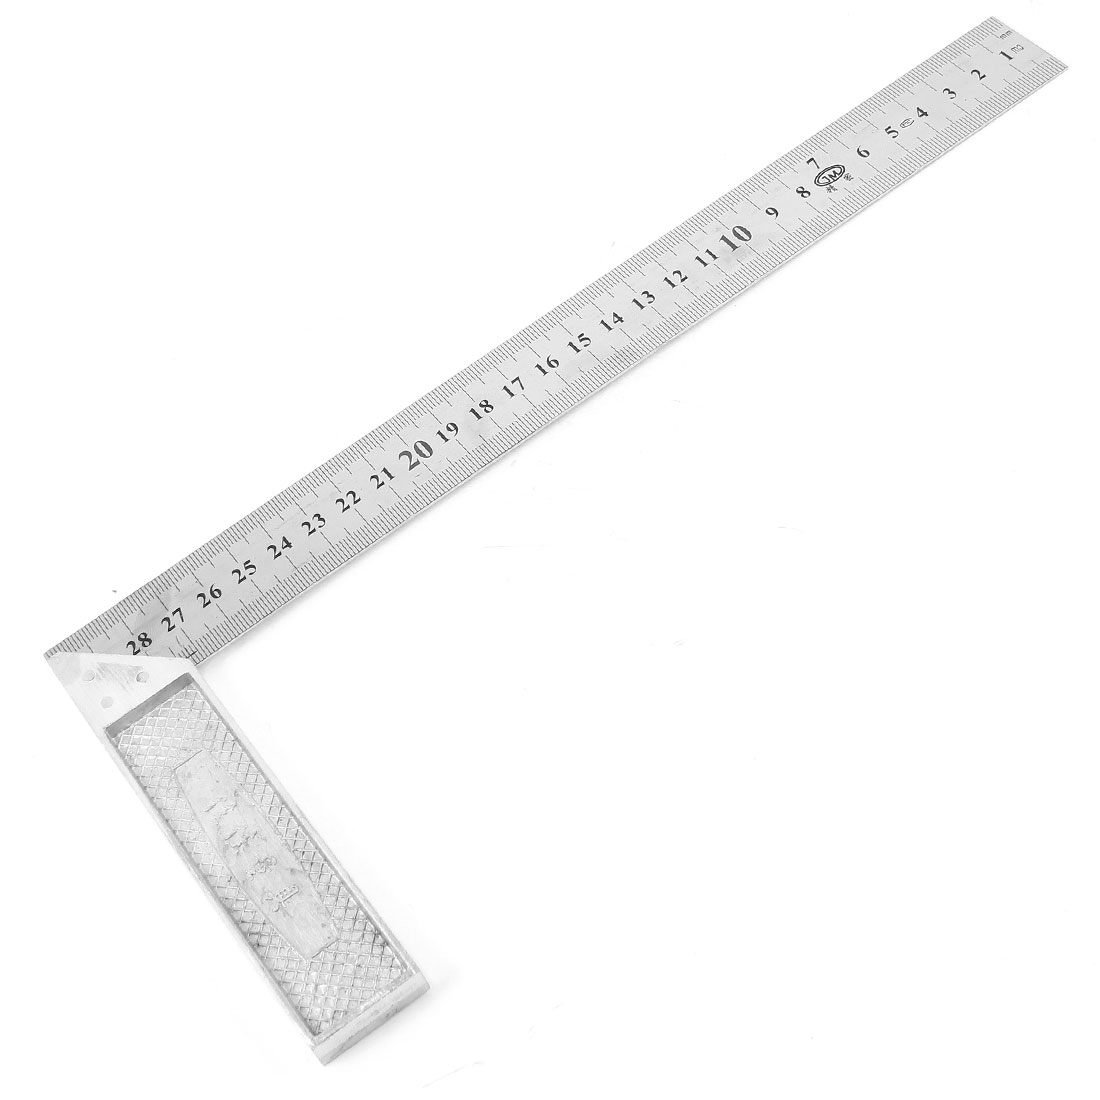 30cm Length Stainless Steel L-Square Angle Square Ruler Silver Tone